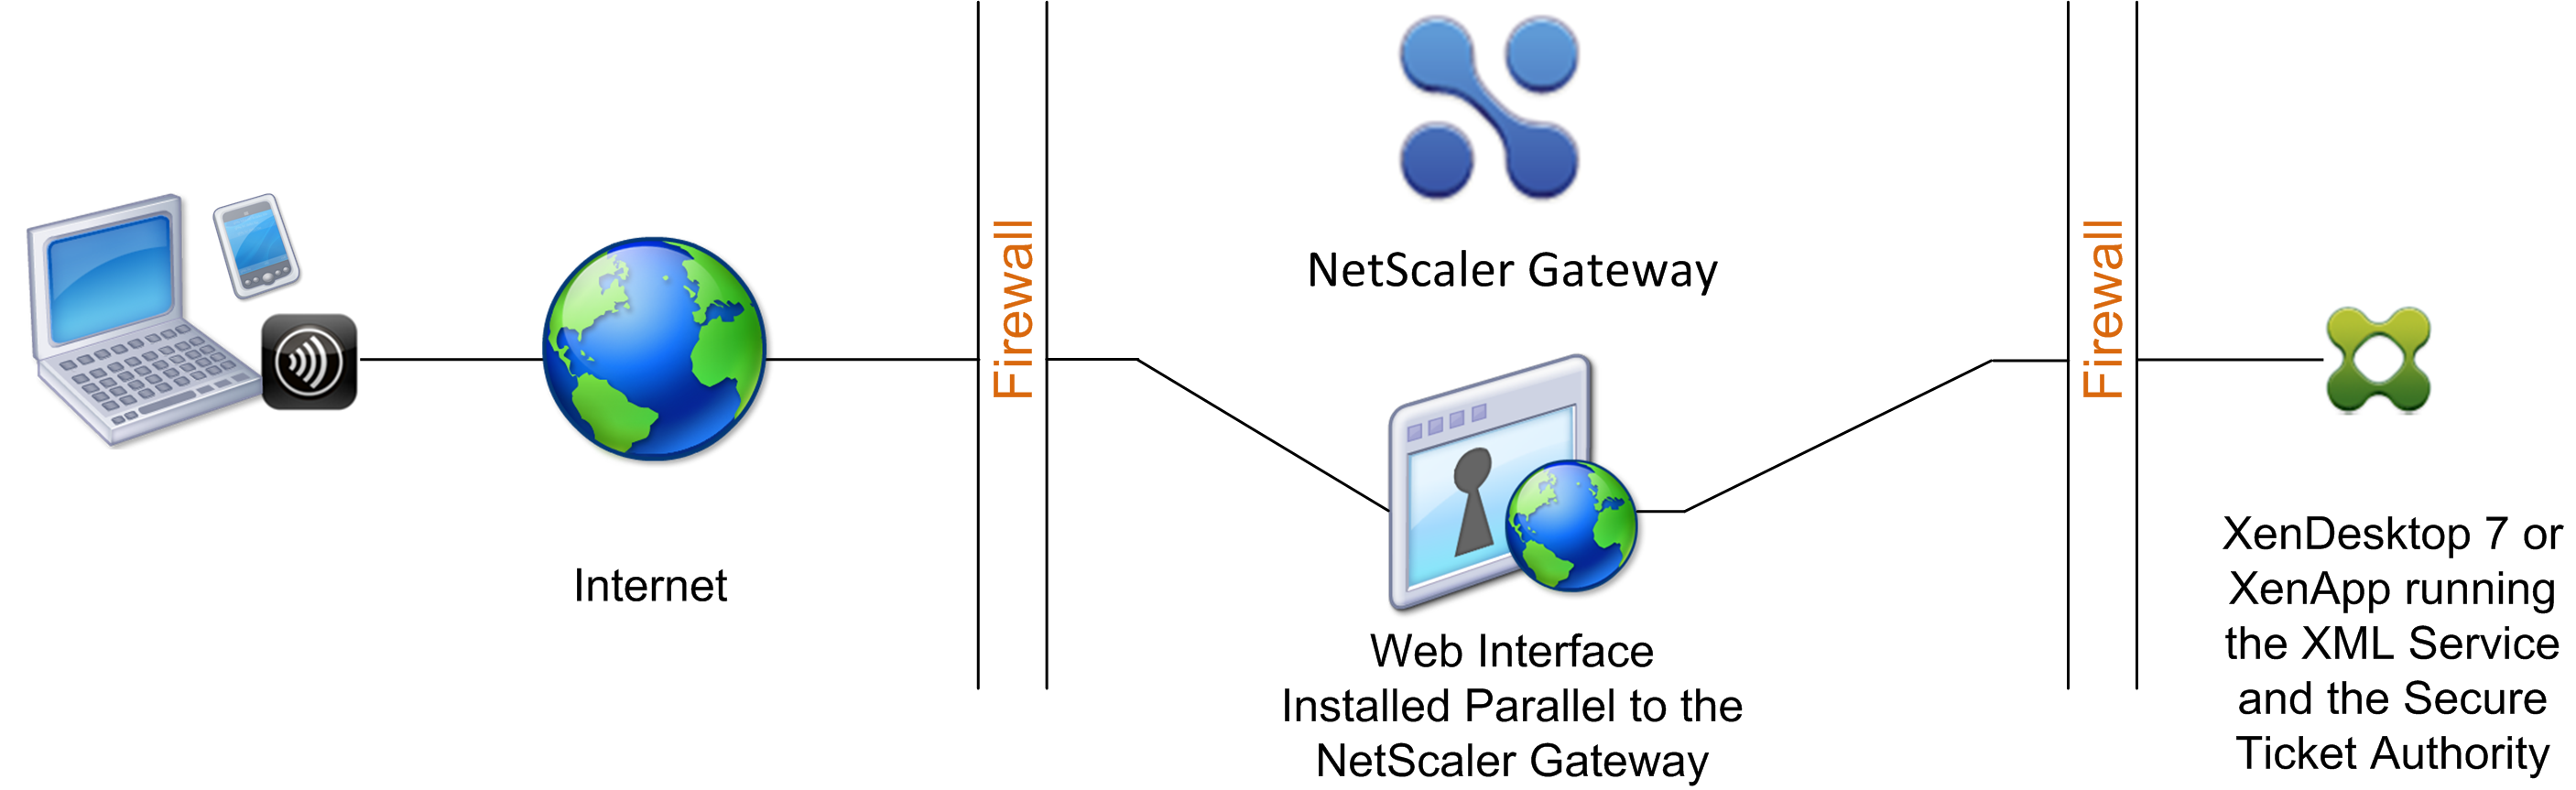 Web Interface Running Parallel to Citrix Gateway